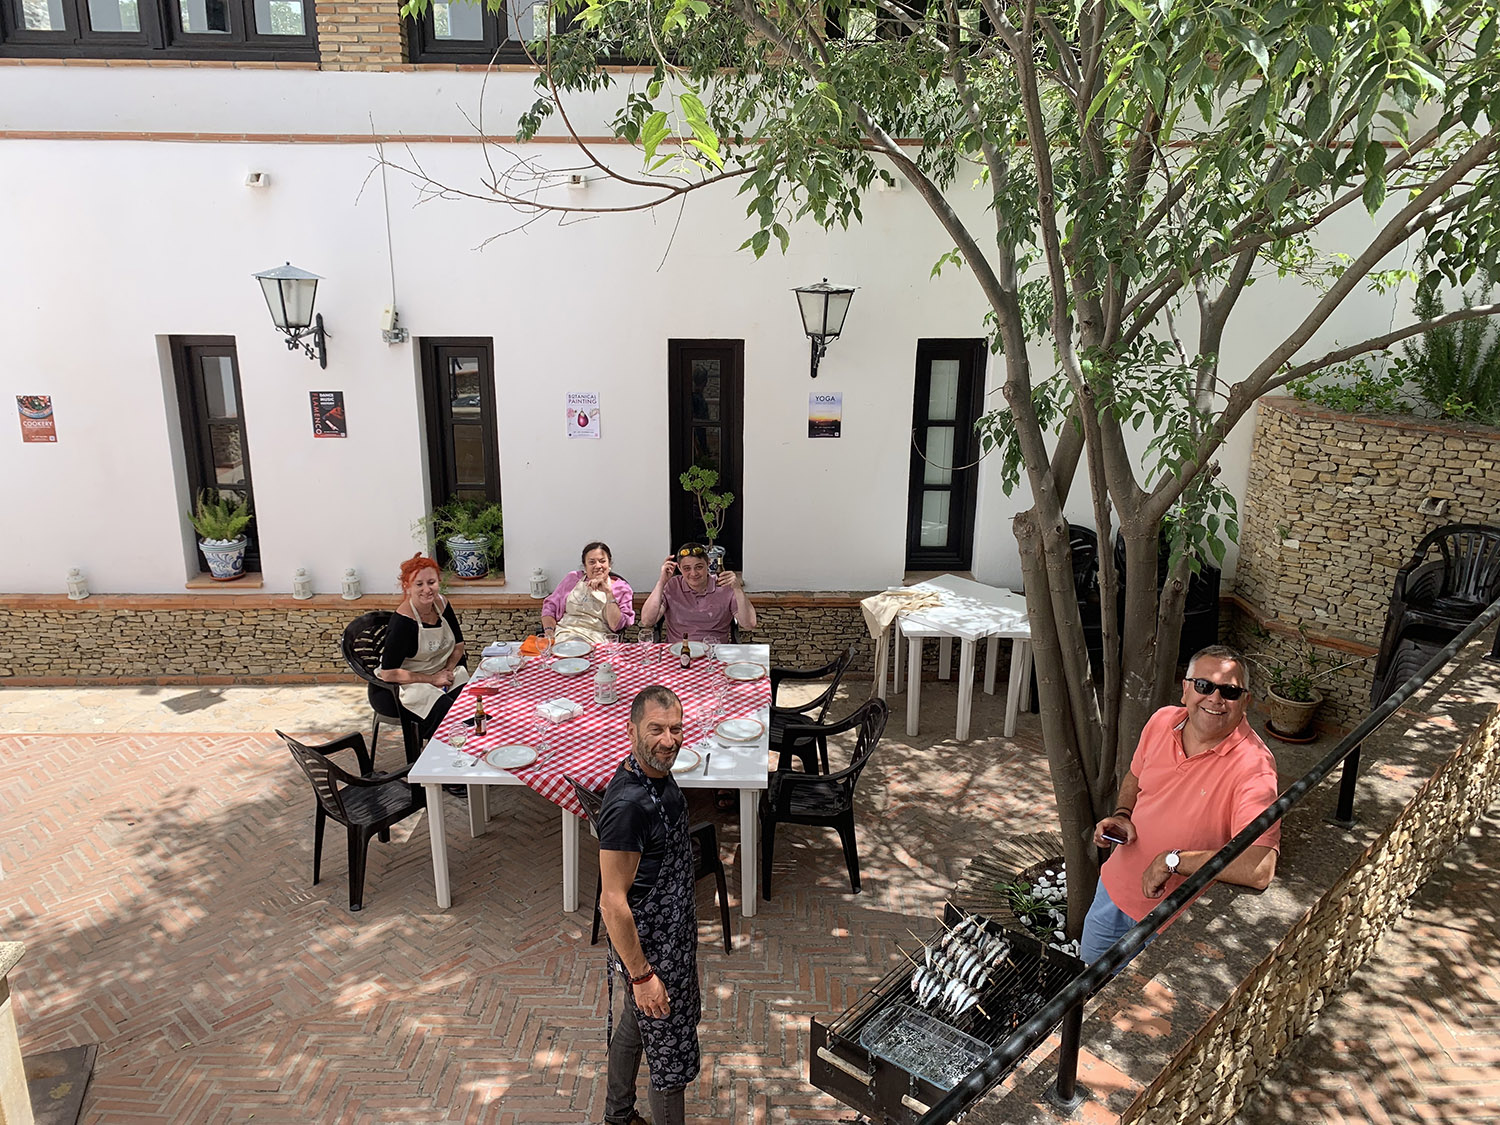 BBQ in the courtyard